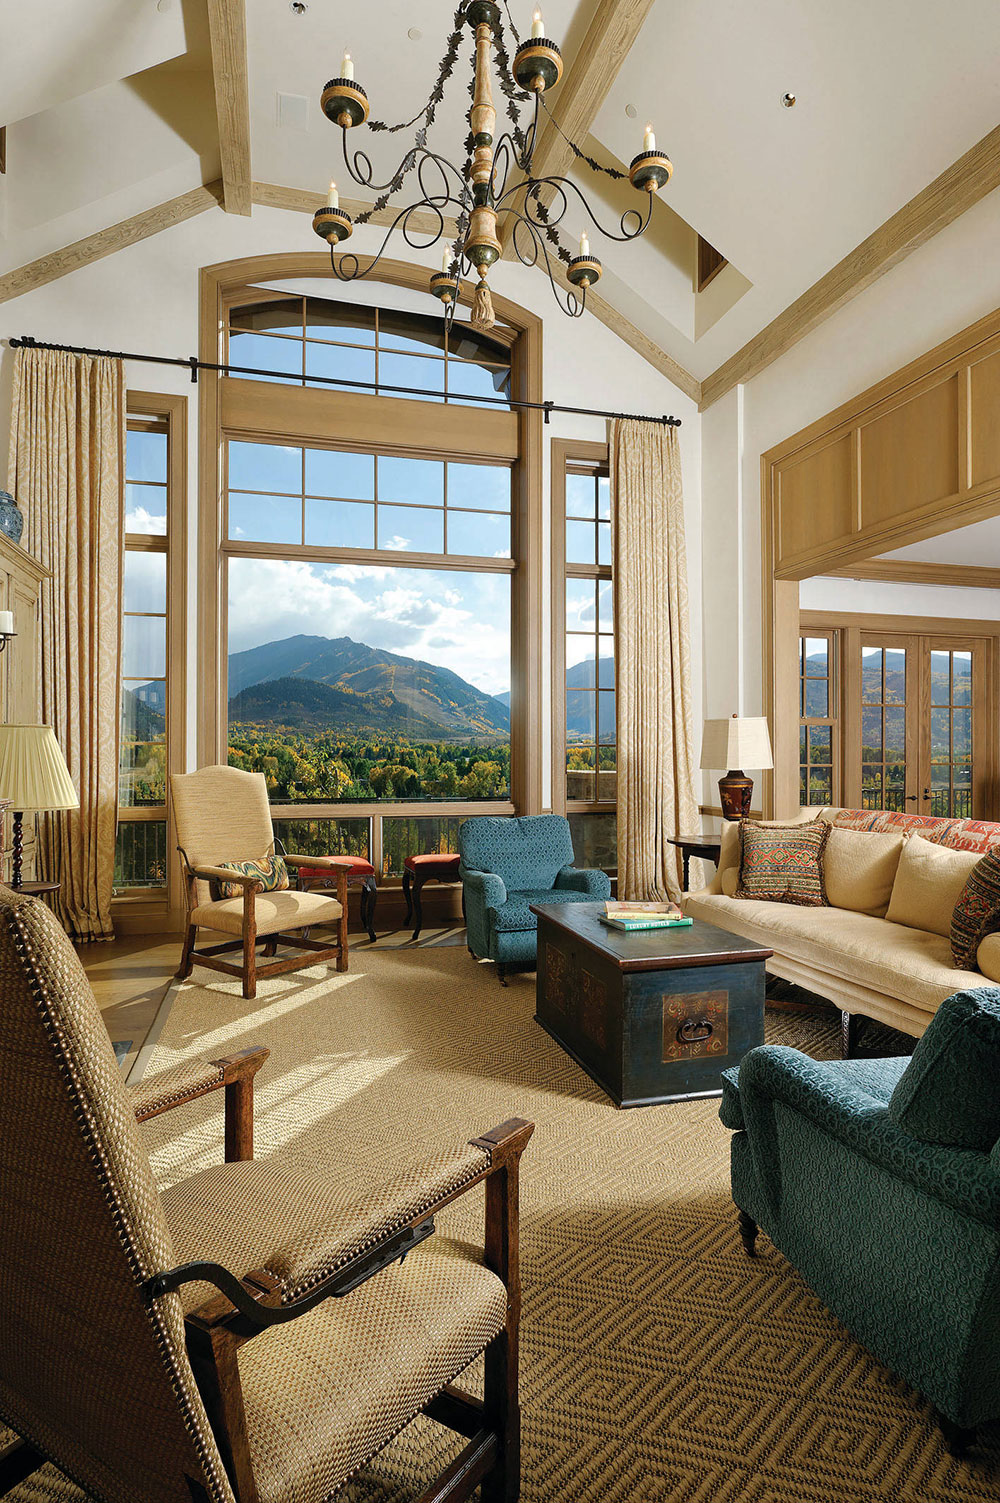 How to Choose Energy Efficient Windows12 How to Choose Energy Efficient Windows